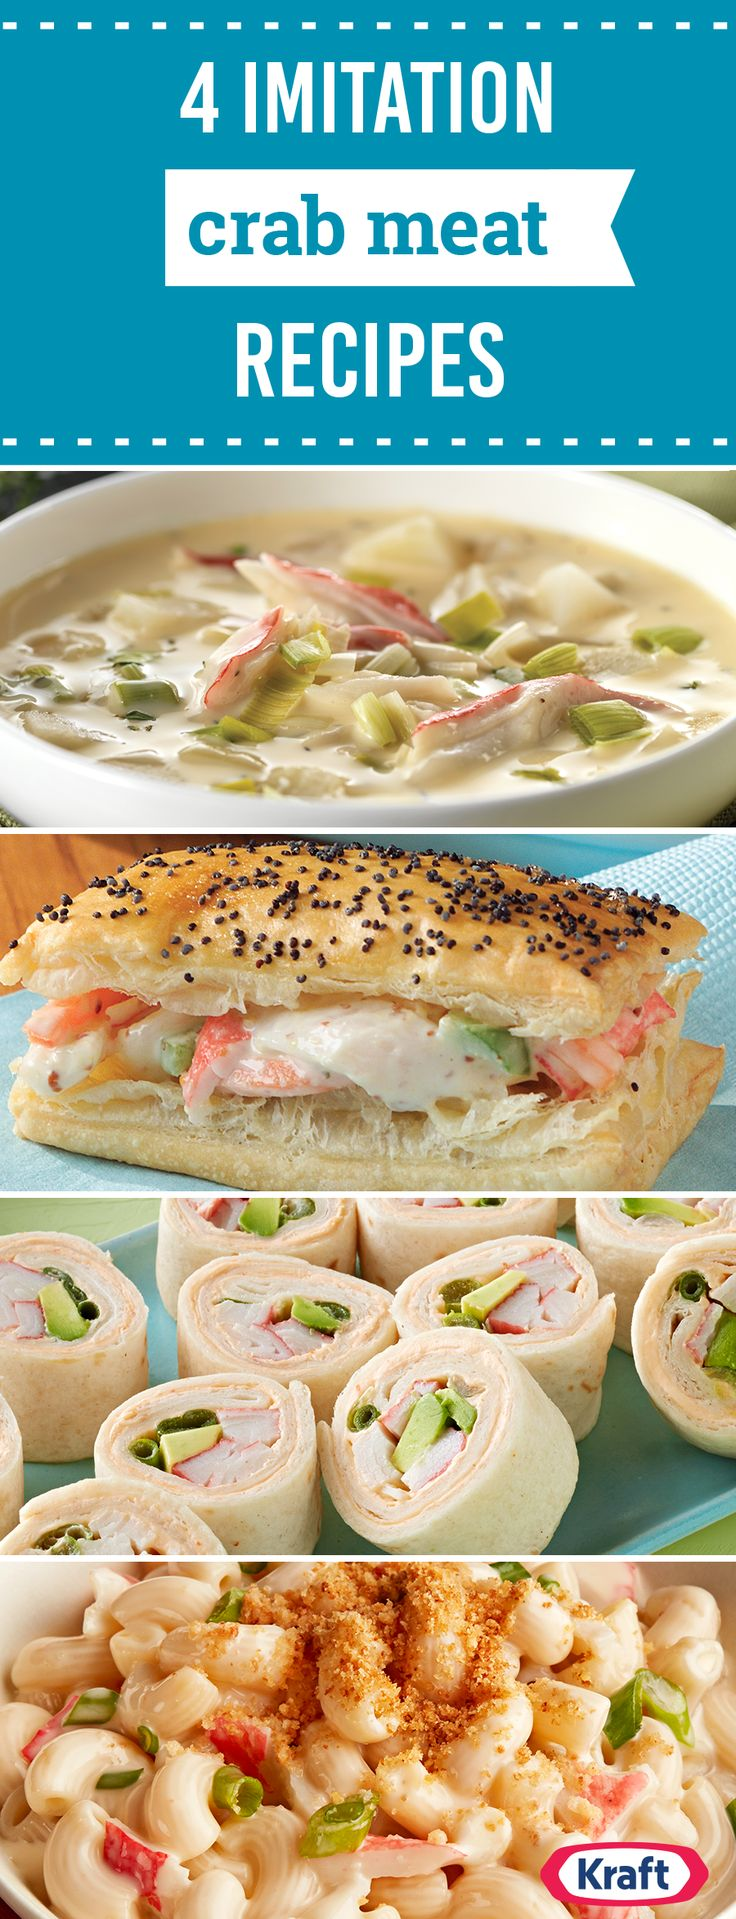 2013 best quick and easy dinners images on pinterest asian food 4 imitation crab meat recipes they say imitation is the best form of flattery thats why our imitation crab meat recipes will make your next appetizer forumfinder Images